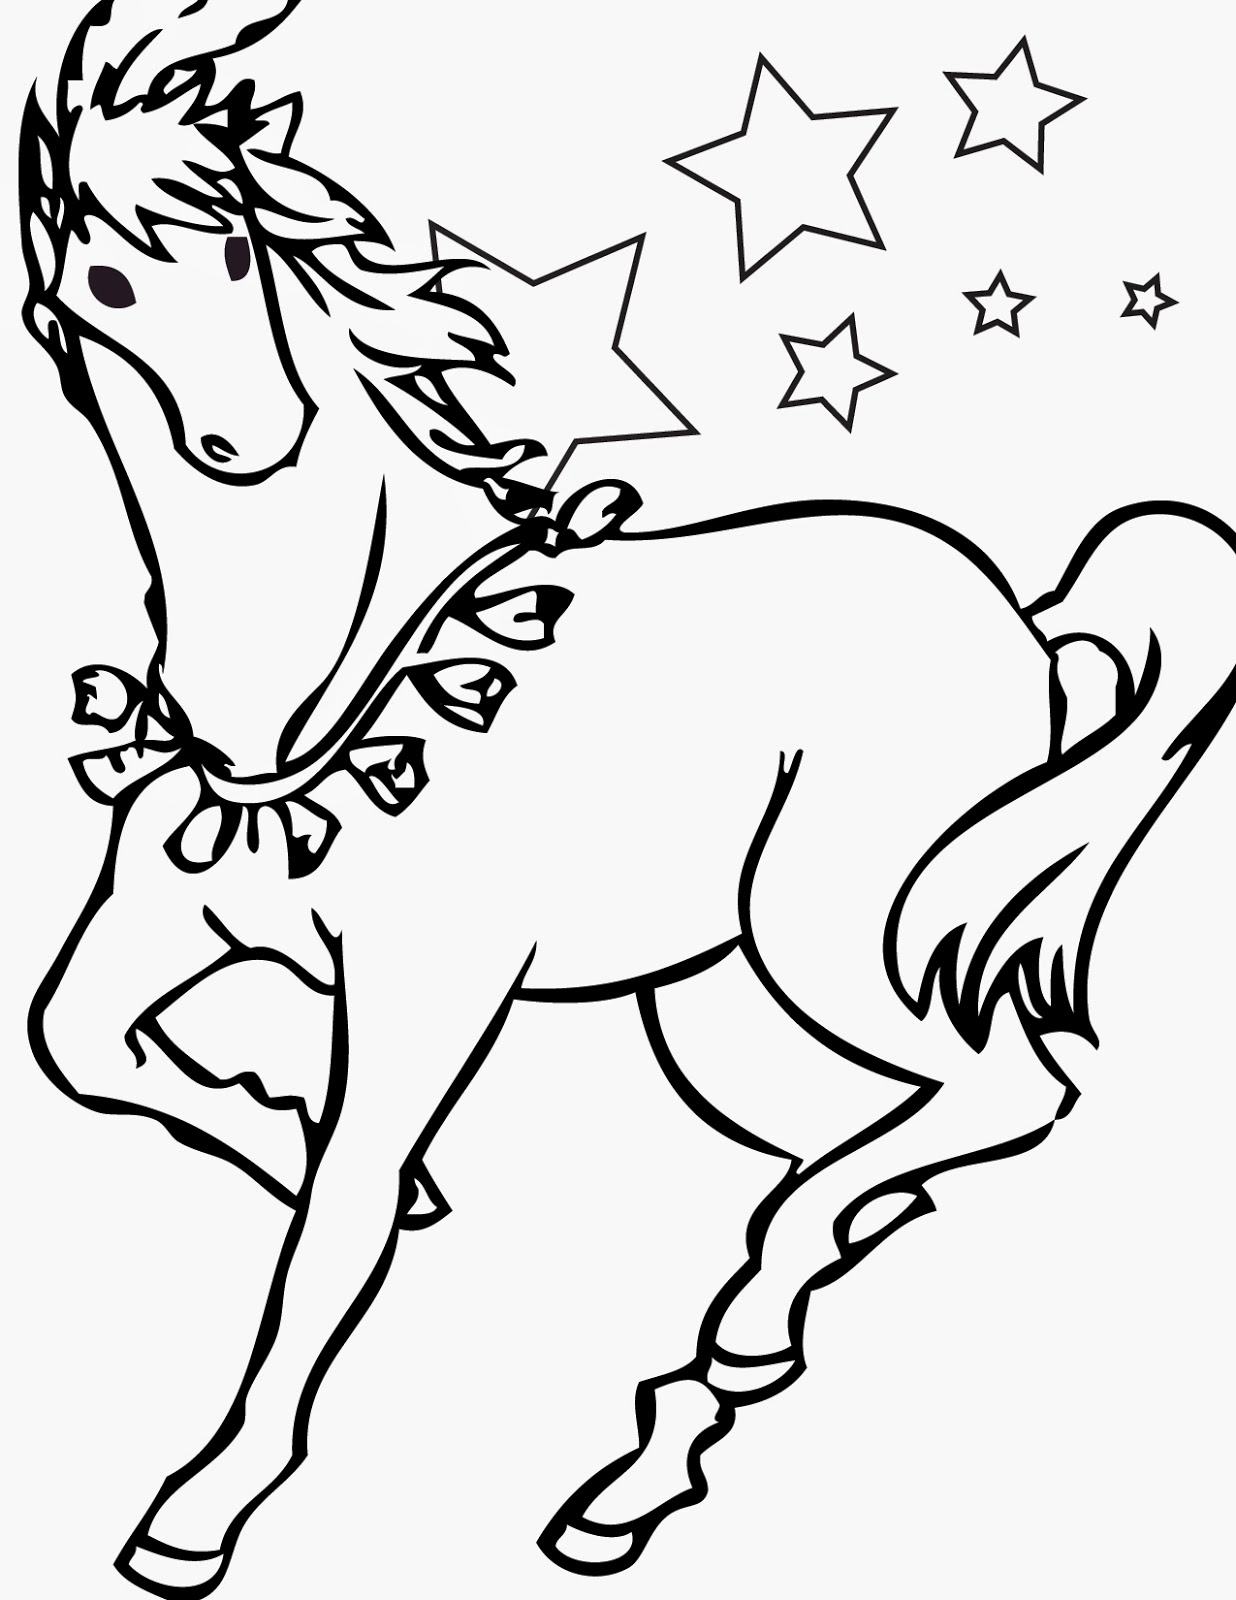 Printable Coloring Pages Horses Printable Coloring Pages